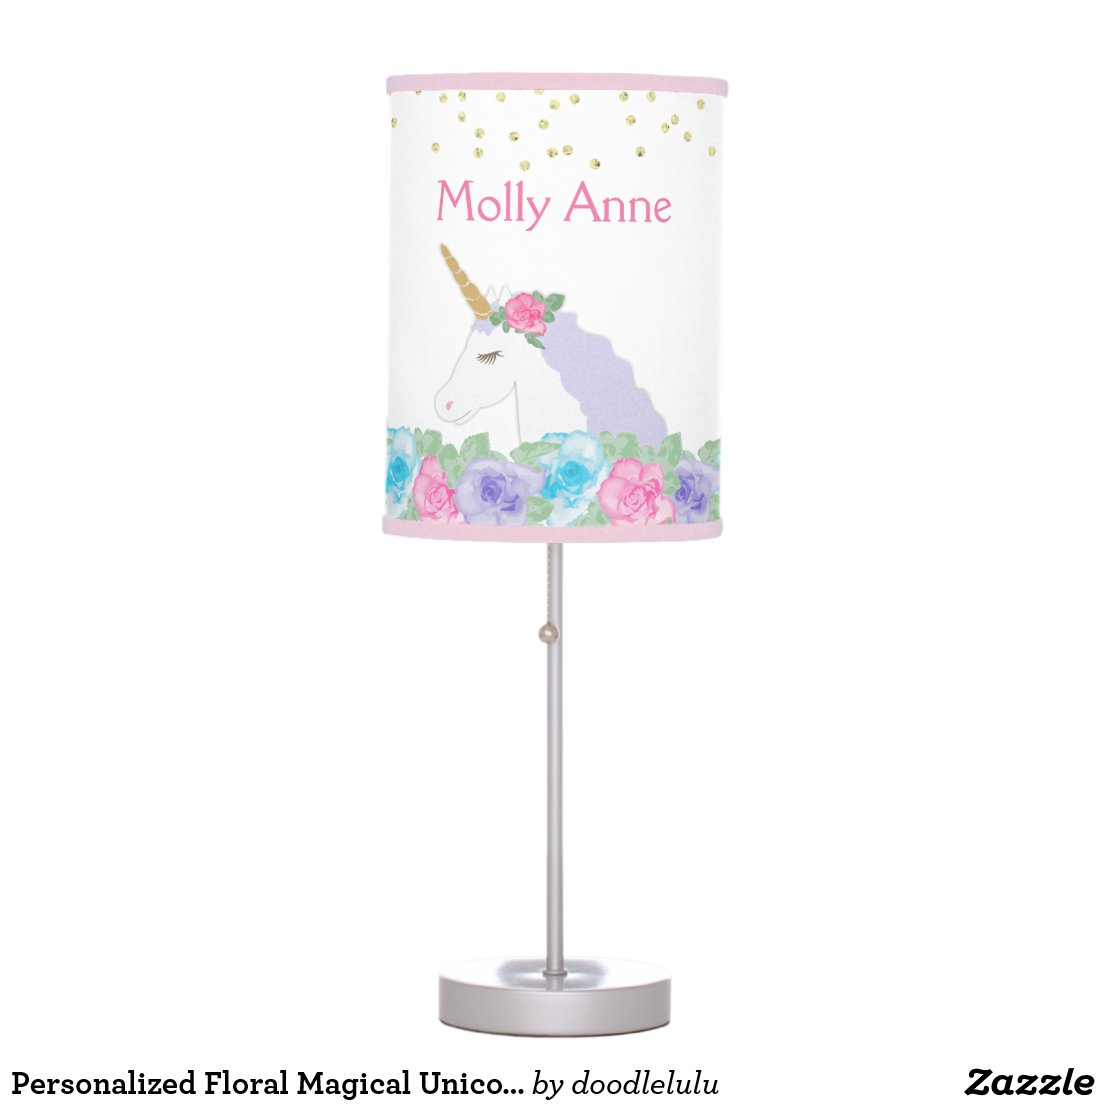 Personalized Floral Magical Unicorn table Lamp